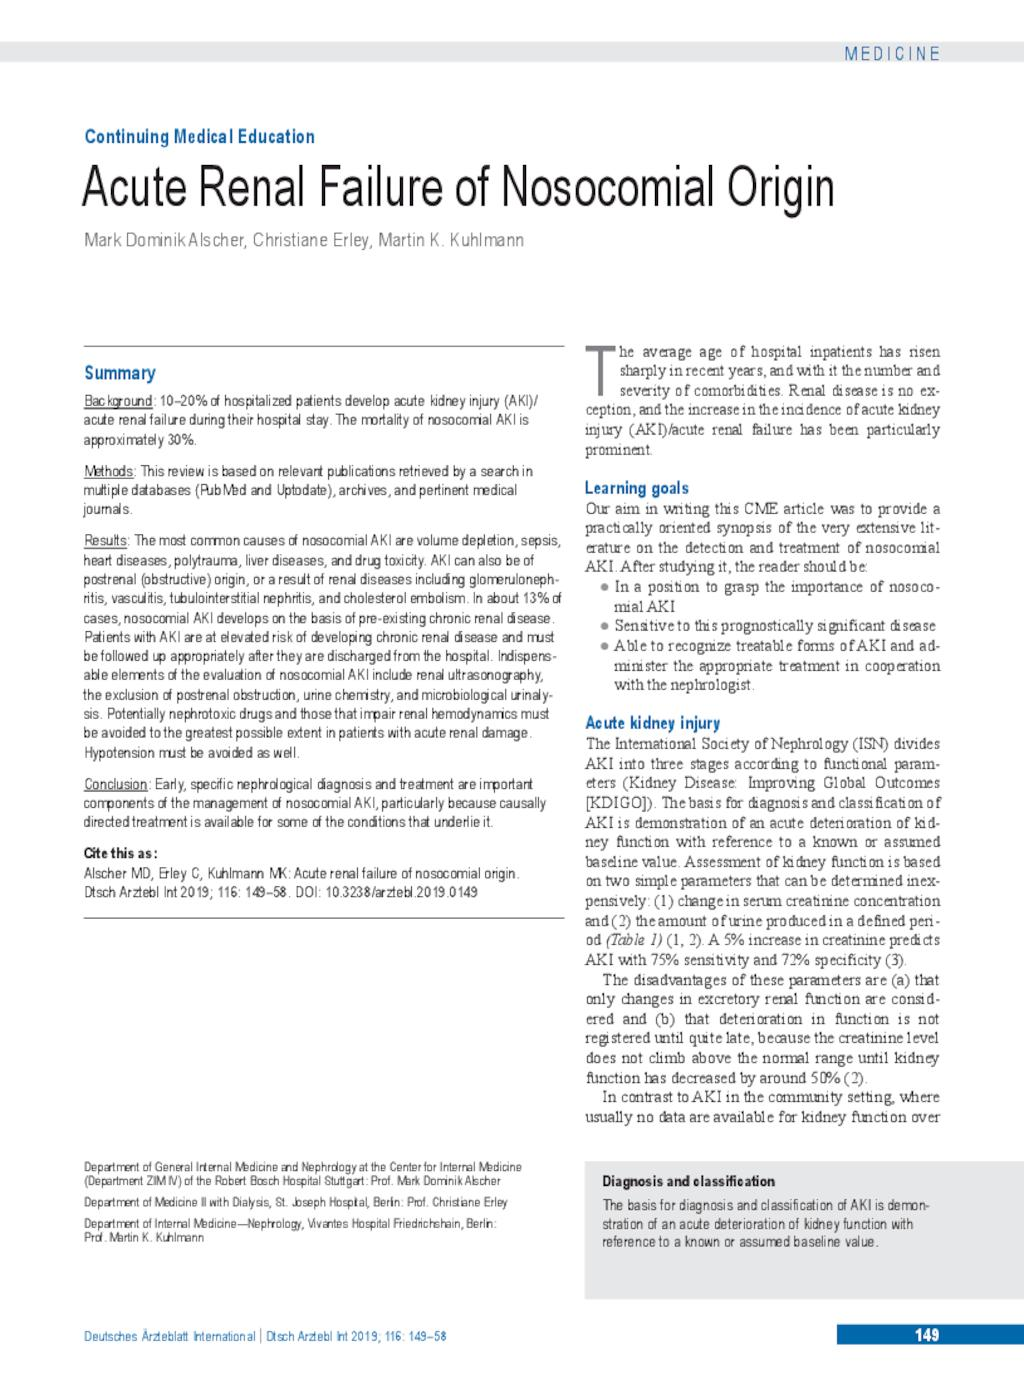 Acute Renal Failure of Nosocomial Origin (01 03 2019)